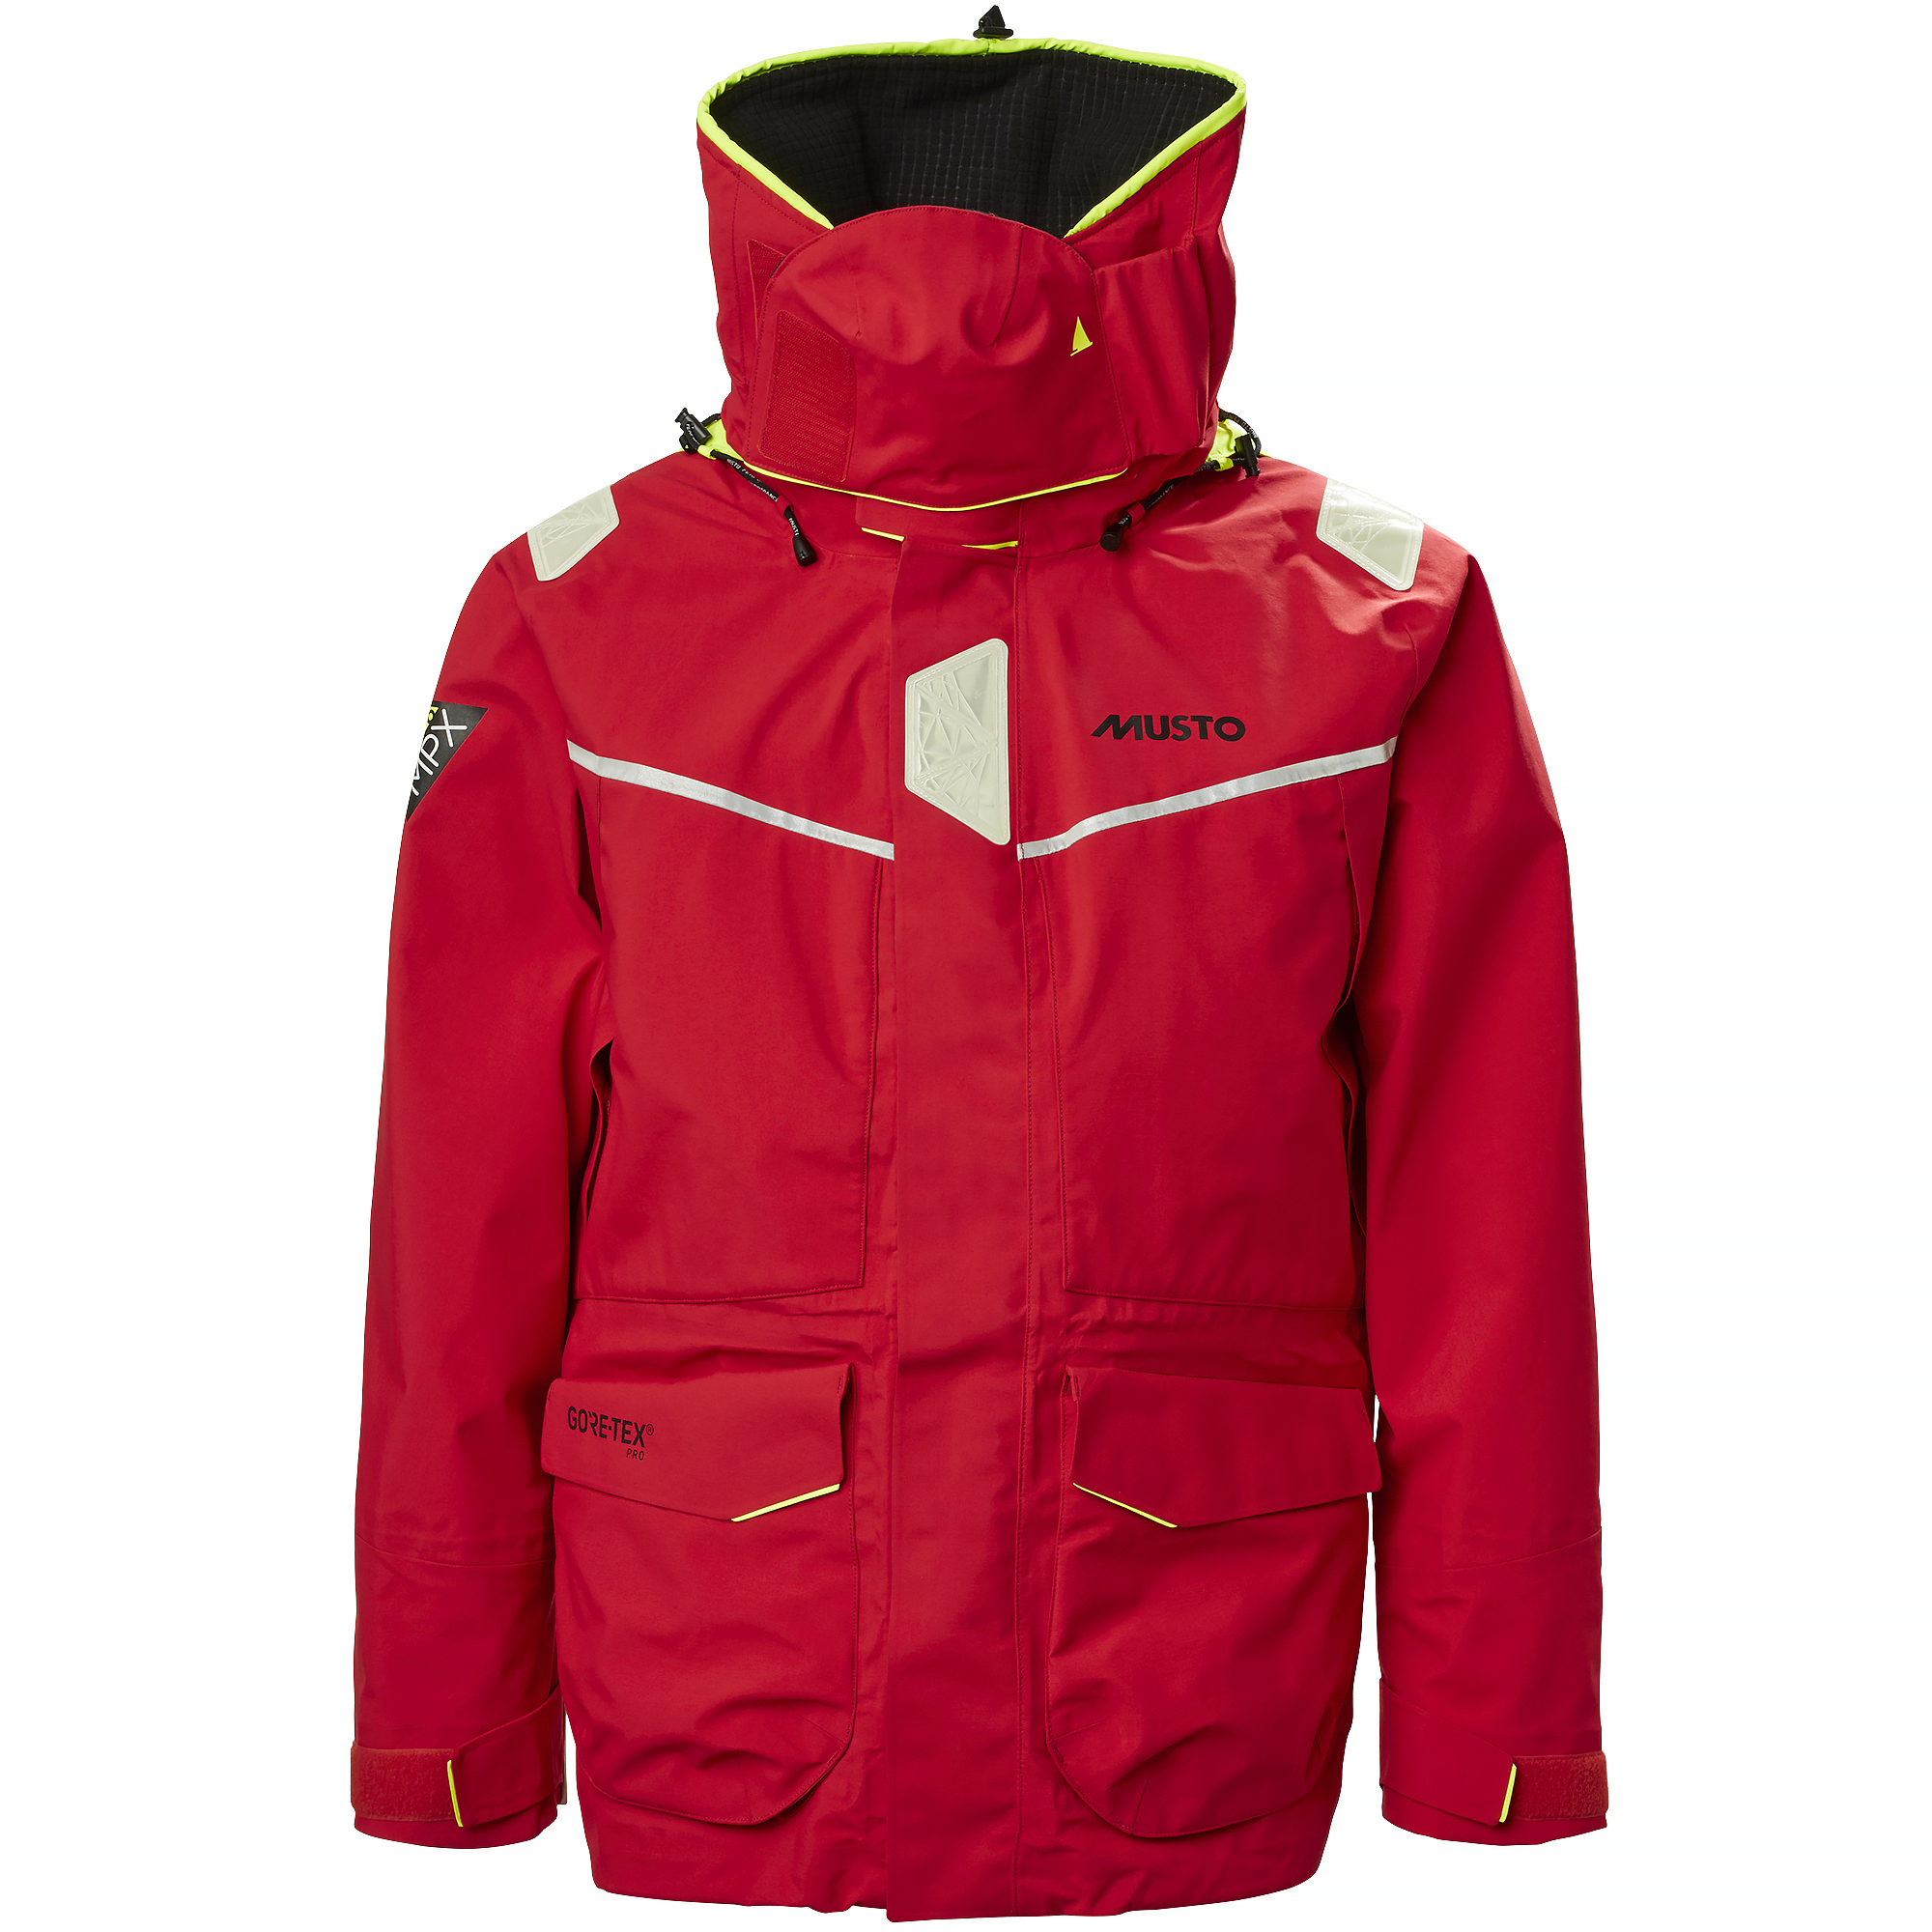 Musto - MPX Gore-Tex Pro Offshore jacket - red